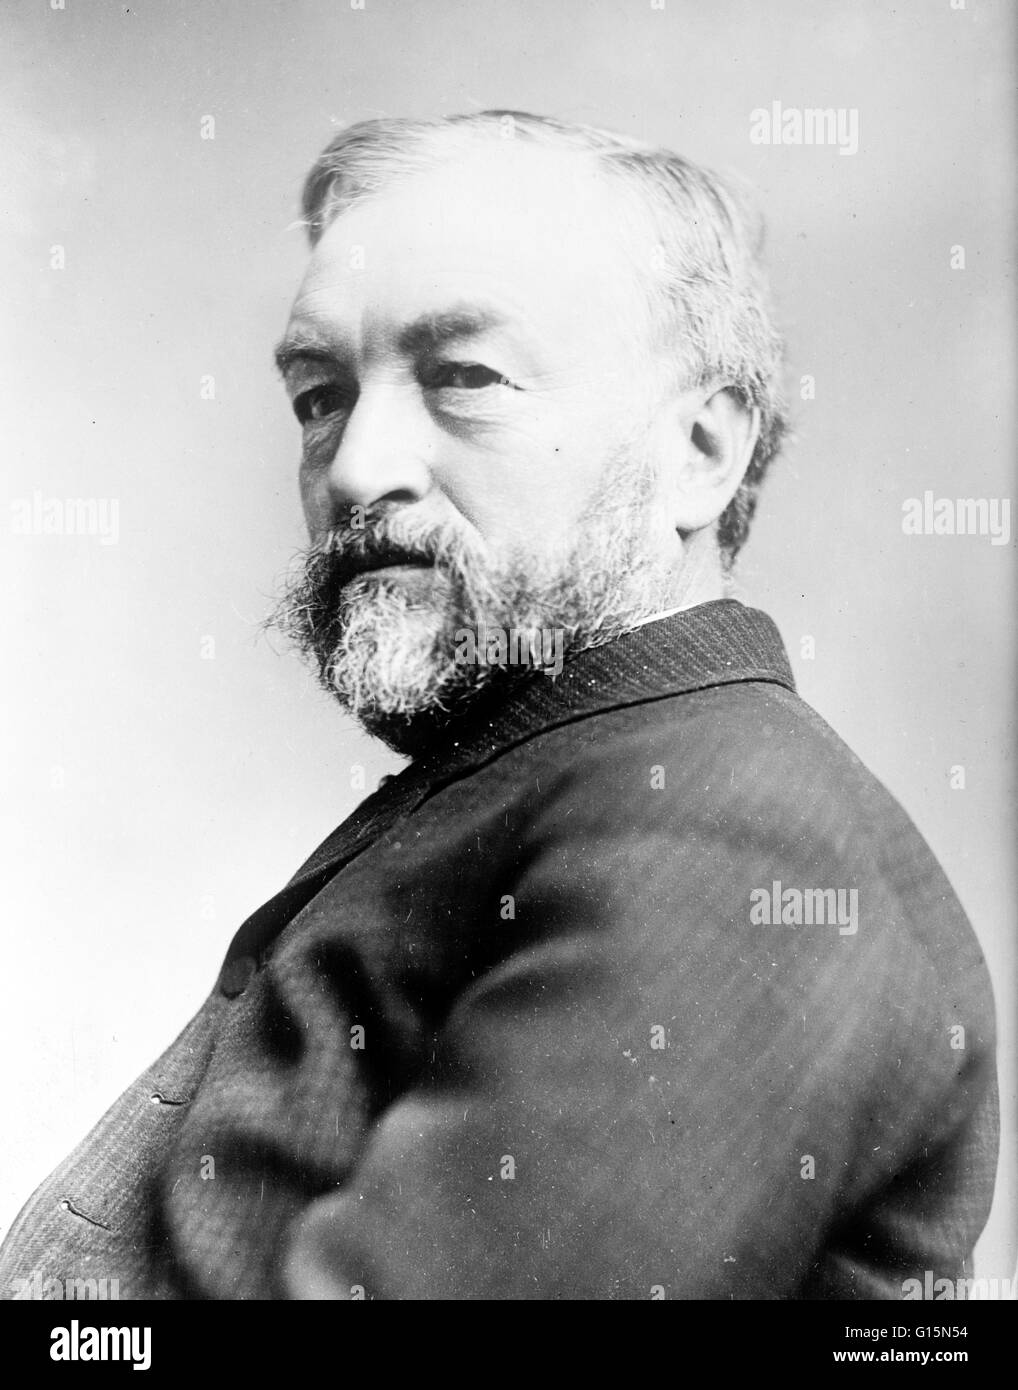 Langley photographed in 1913. Samuel Pierpont Langley (August 22, 1834 - February 27, 1906) was an American astronomer, - Stock Image